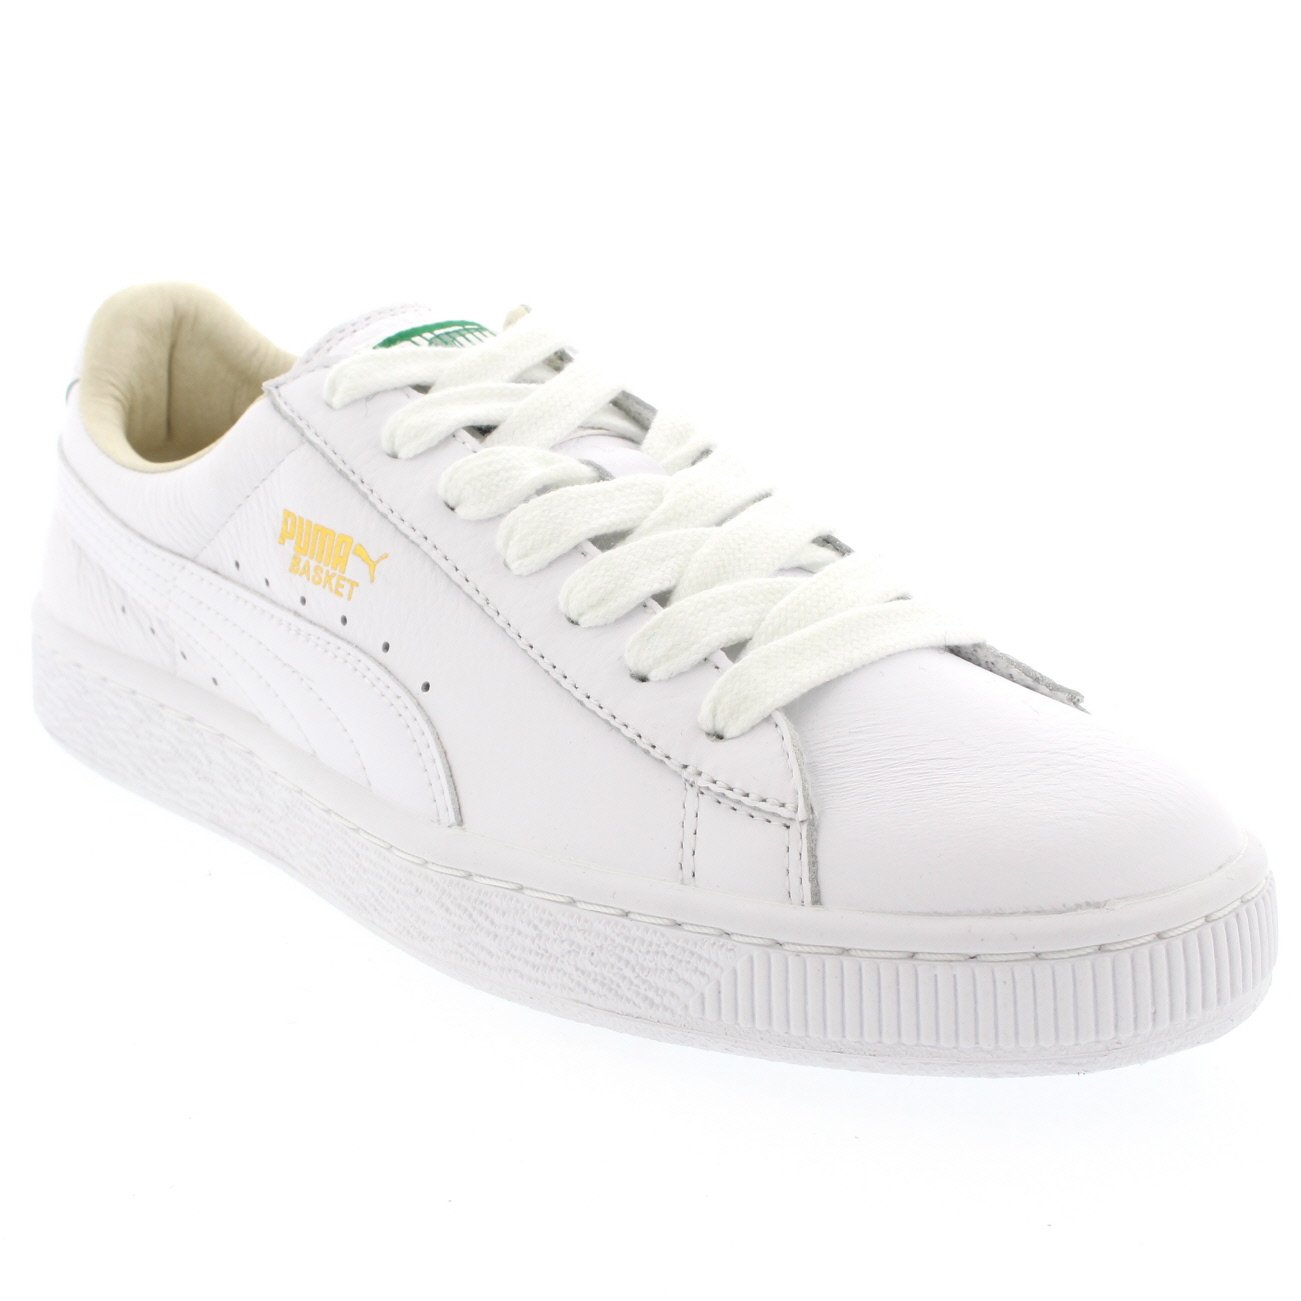 Puma mens white basket classic leather trainers men's shoes